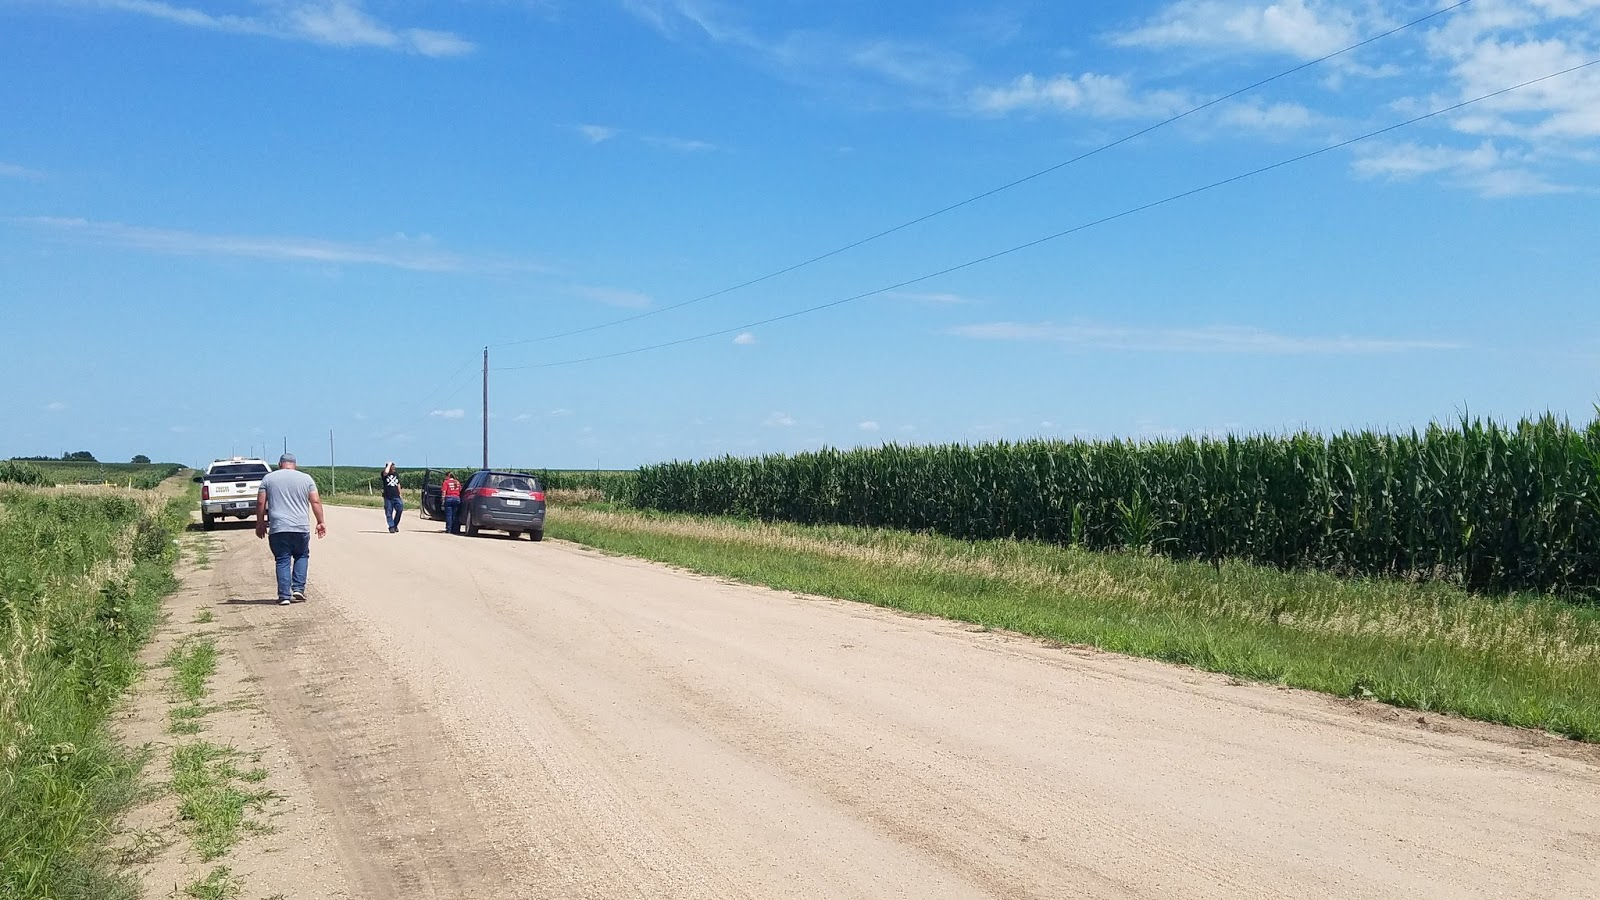 Kathryn's Report: Cessna T188C AgHusky, N3367J: Accident